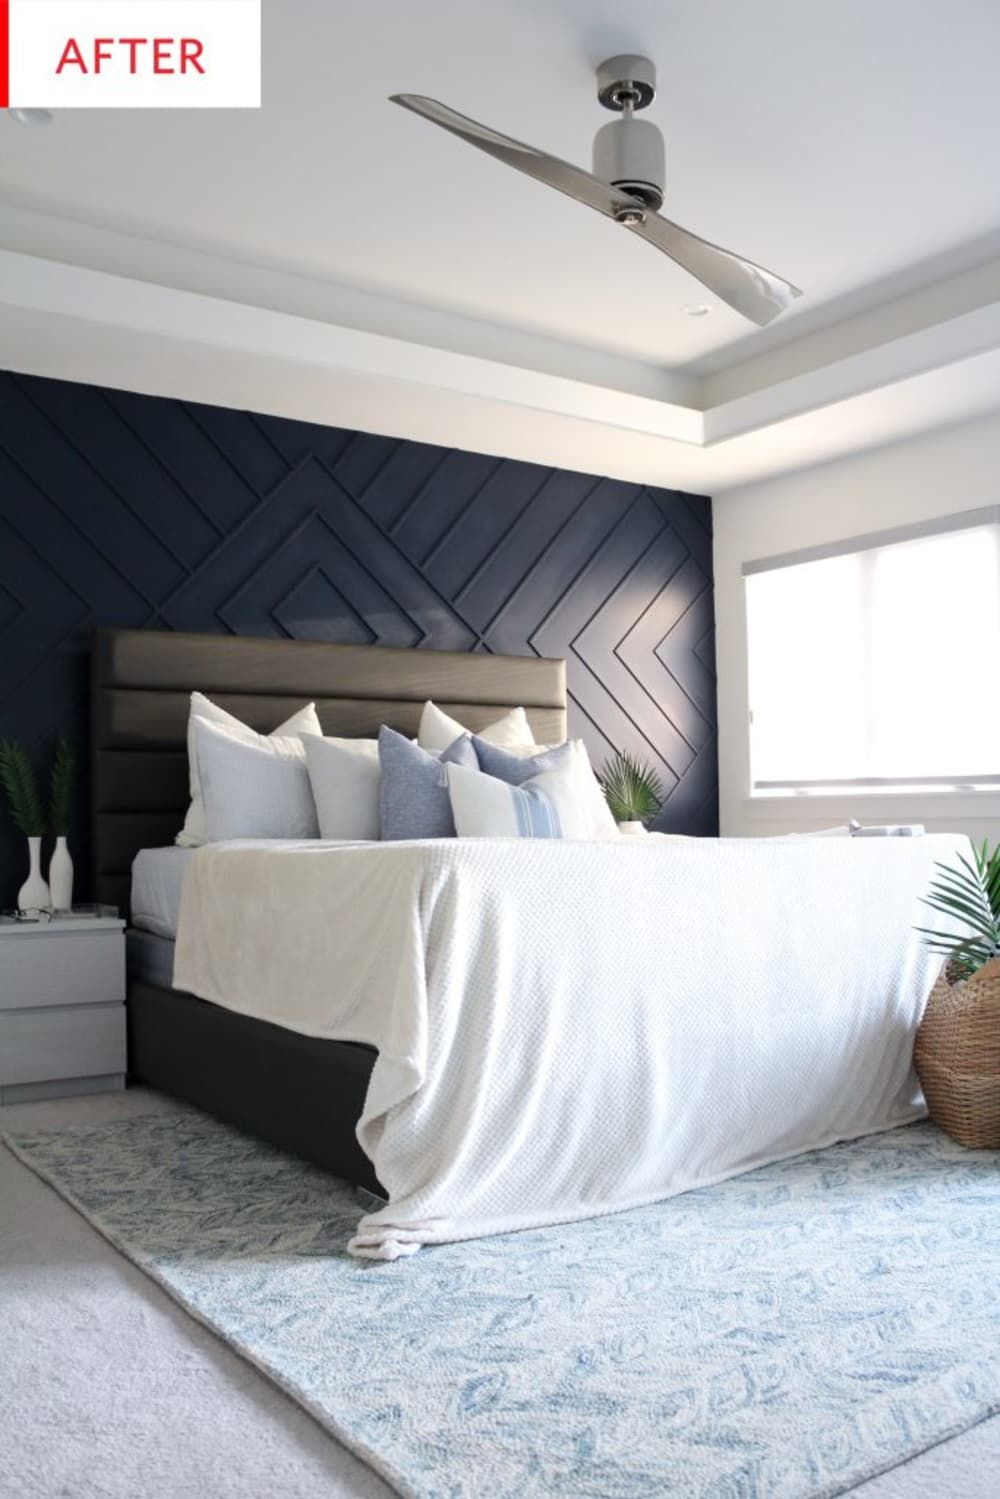 Before and After: A $8 Feature Wall Transforms a Master Bedroom